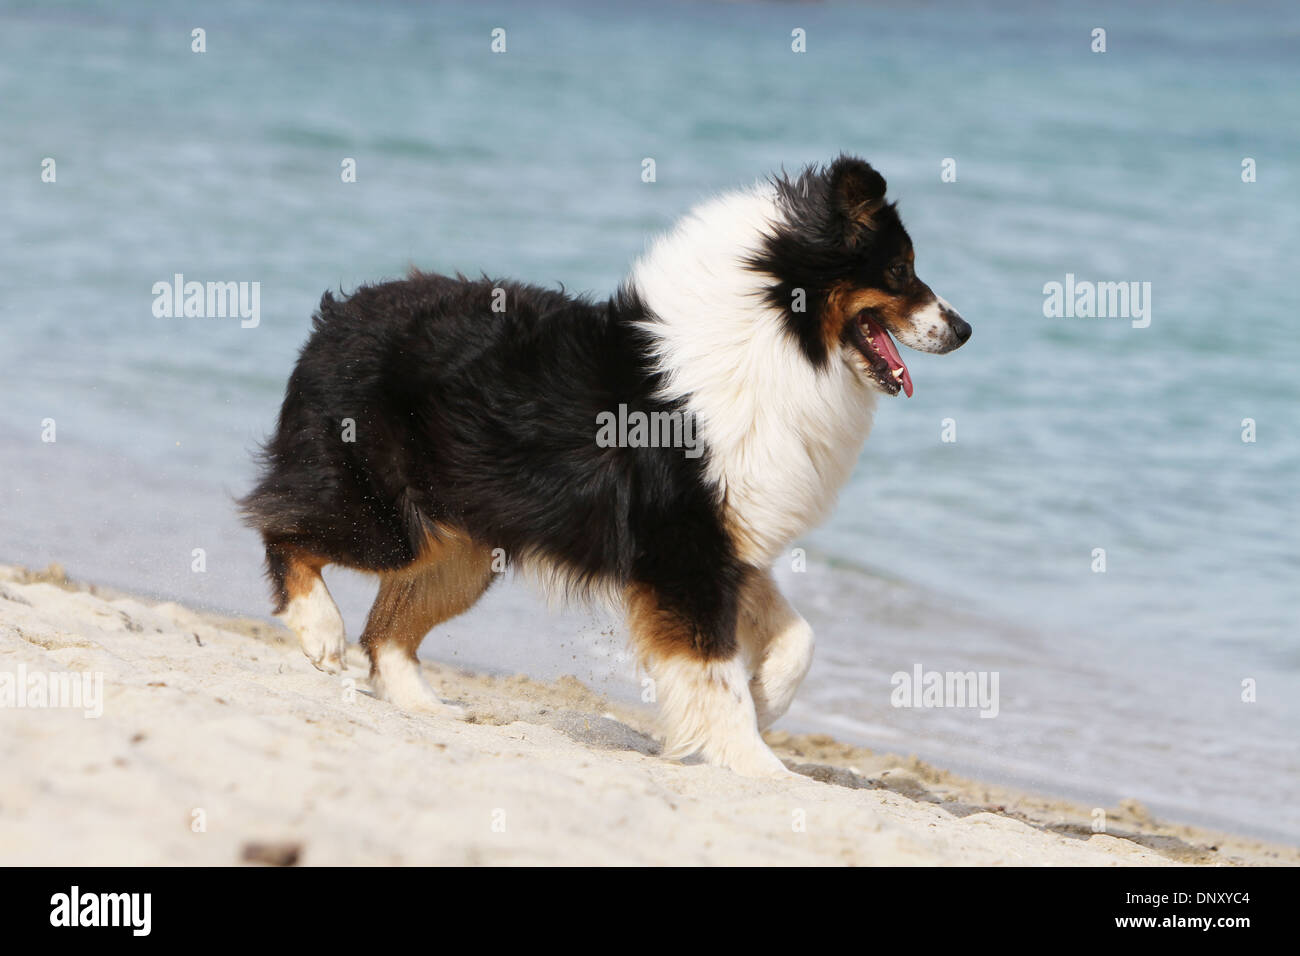 dog australian shepherd aussie adult black tricolor walking on stock photo 65131140 alamy. Black Bedroom Furniture Sets. Home Design Ideas